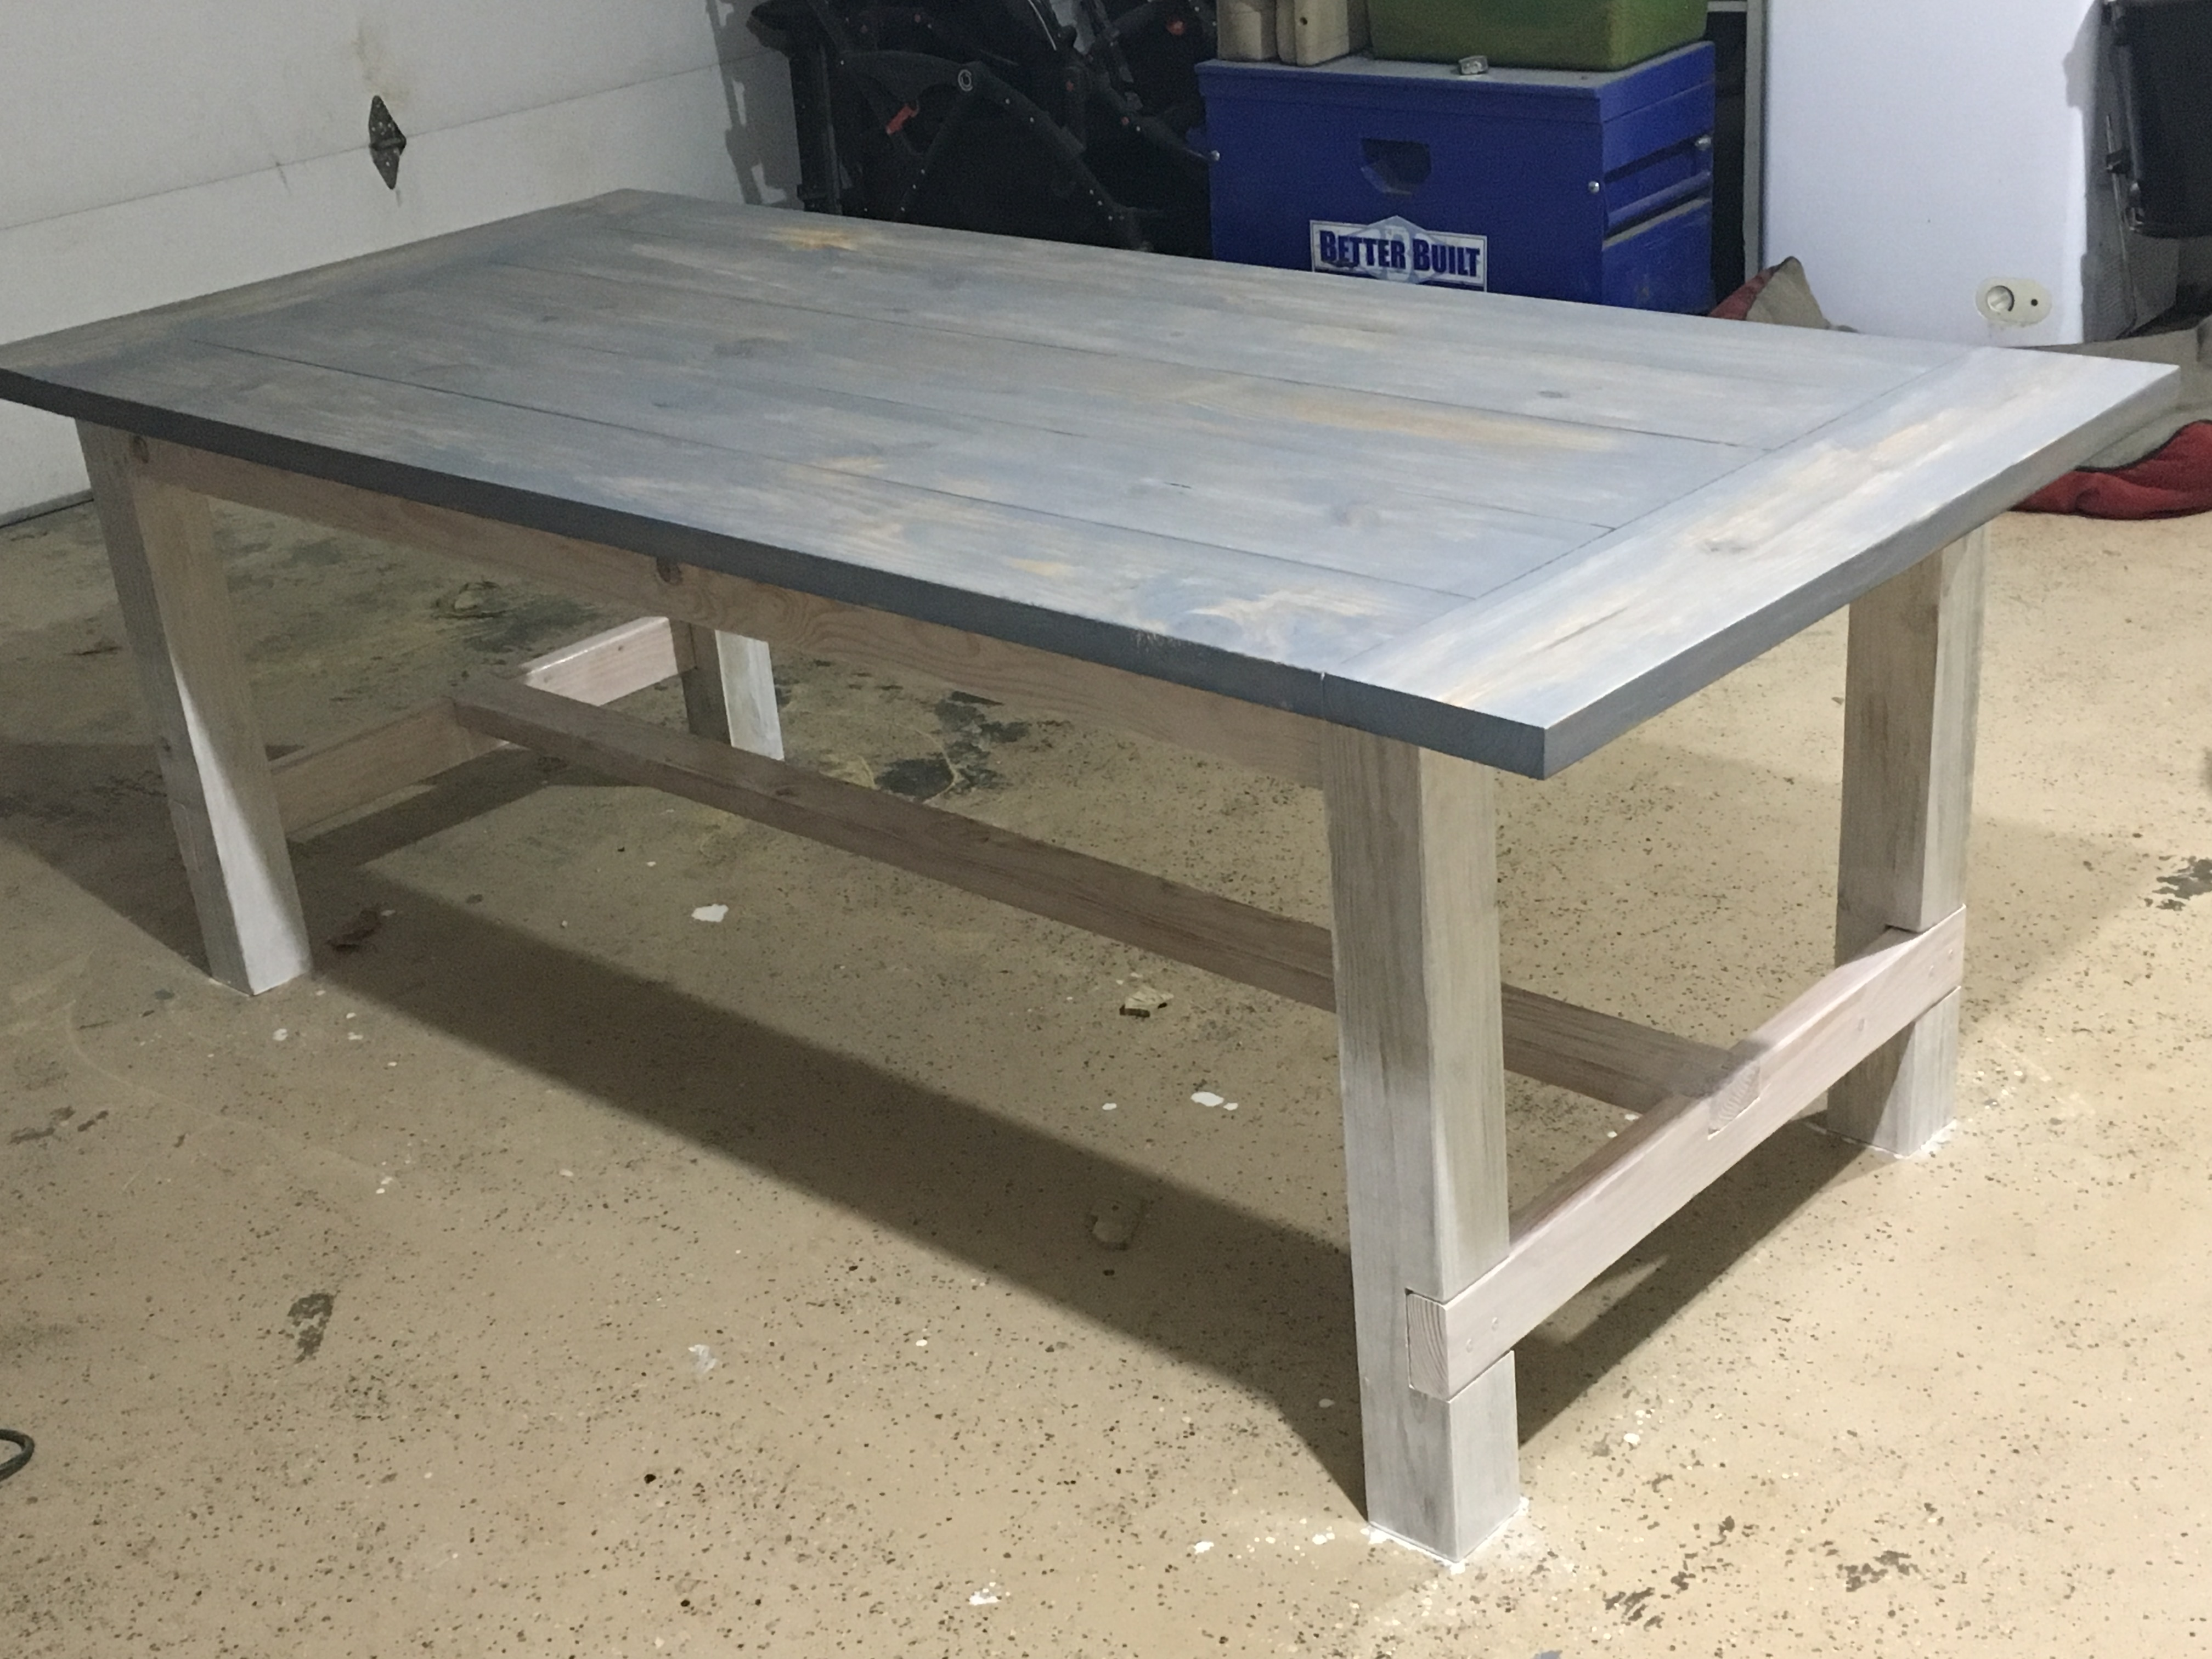 Ana white farmhouse table and benches diy projects for Ana white table bench